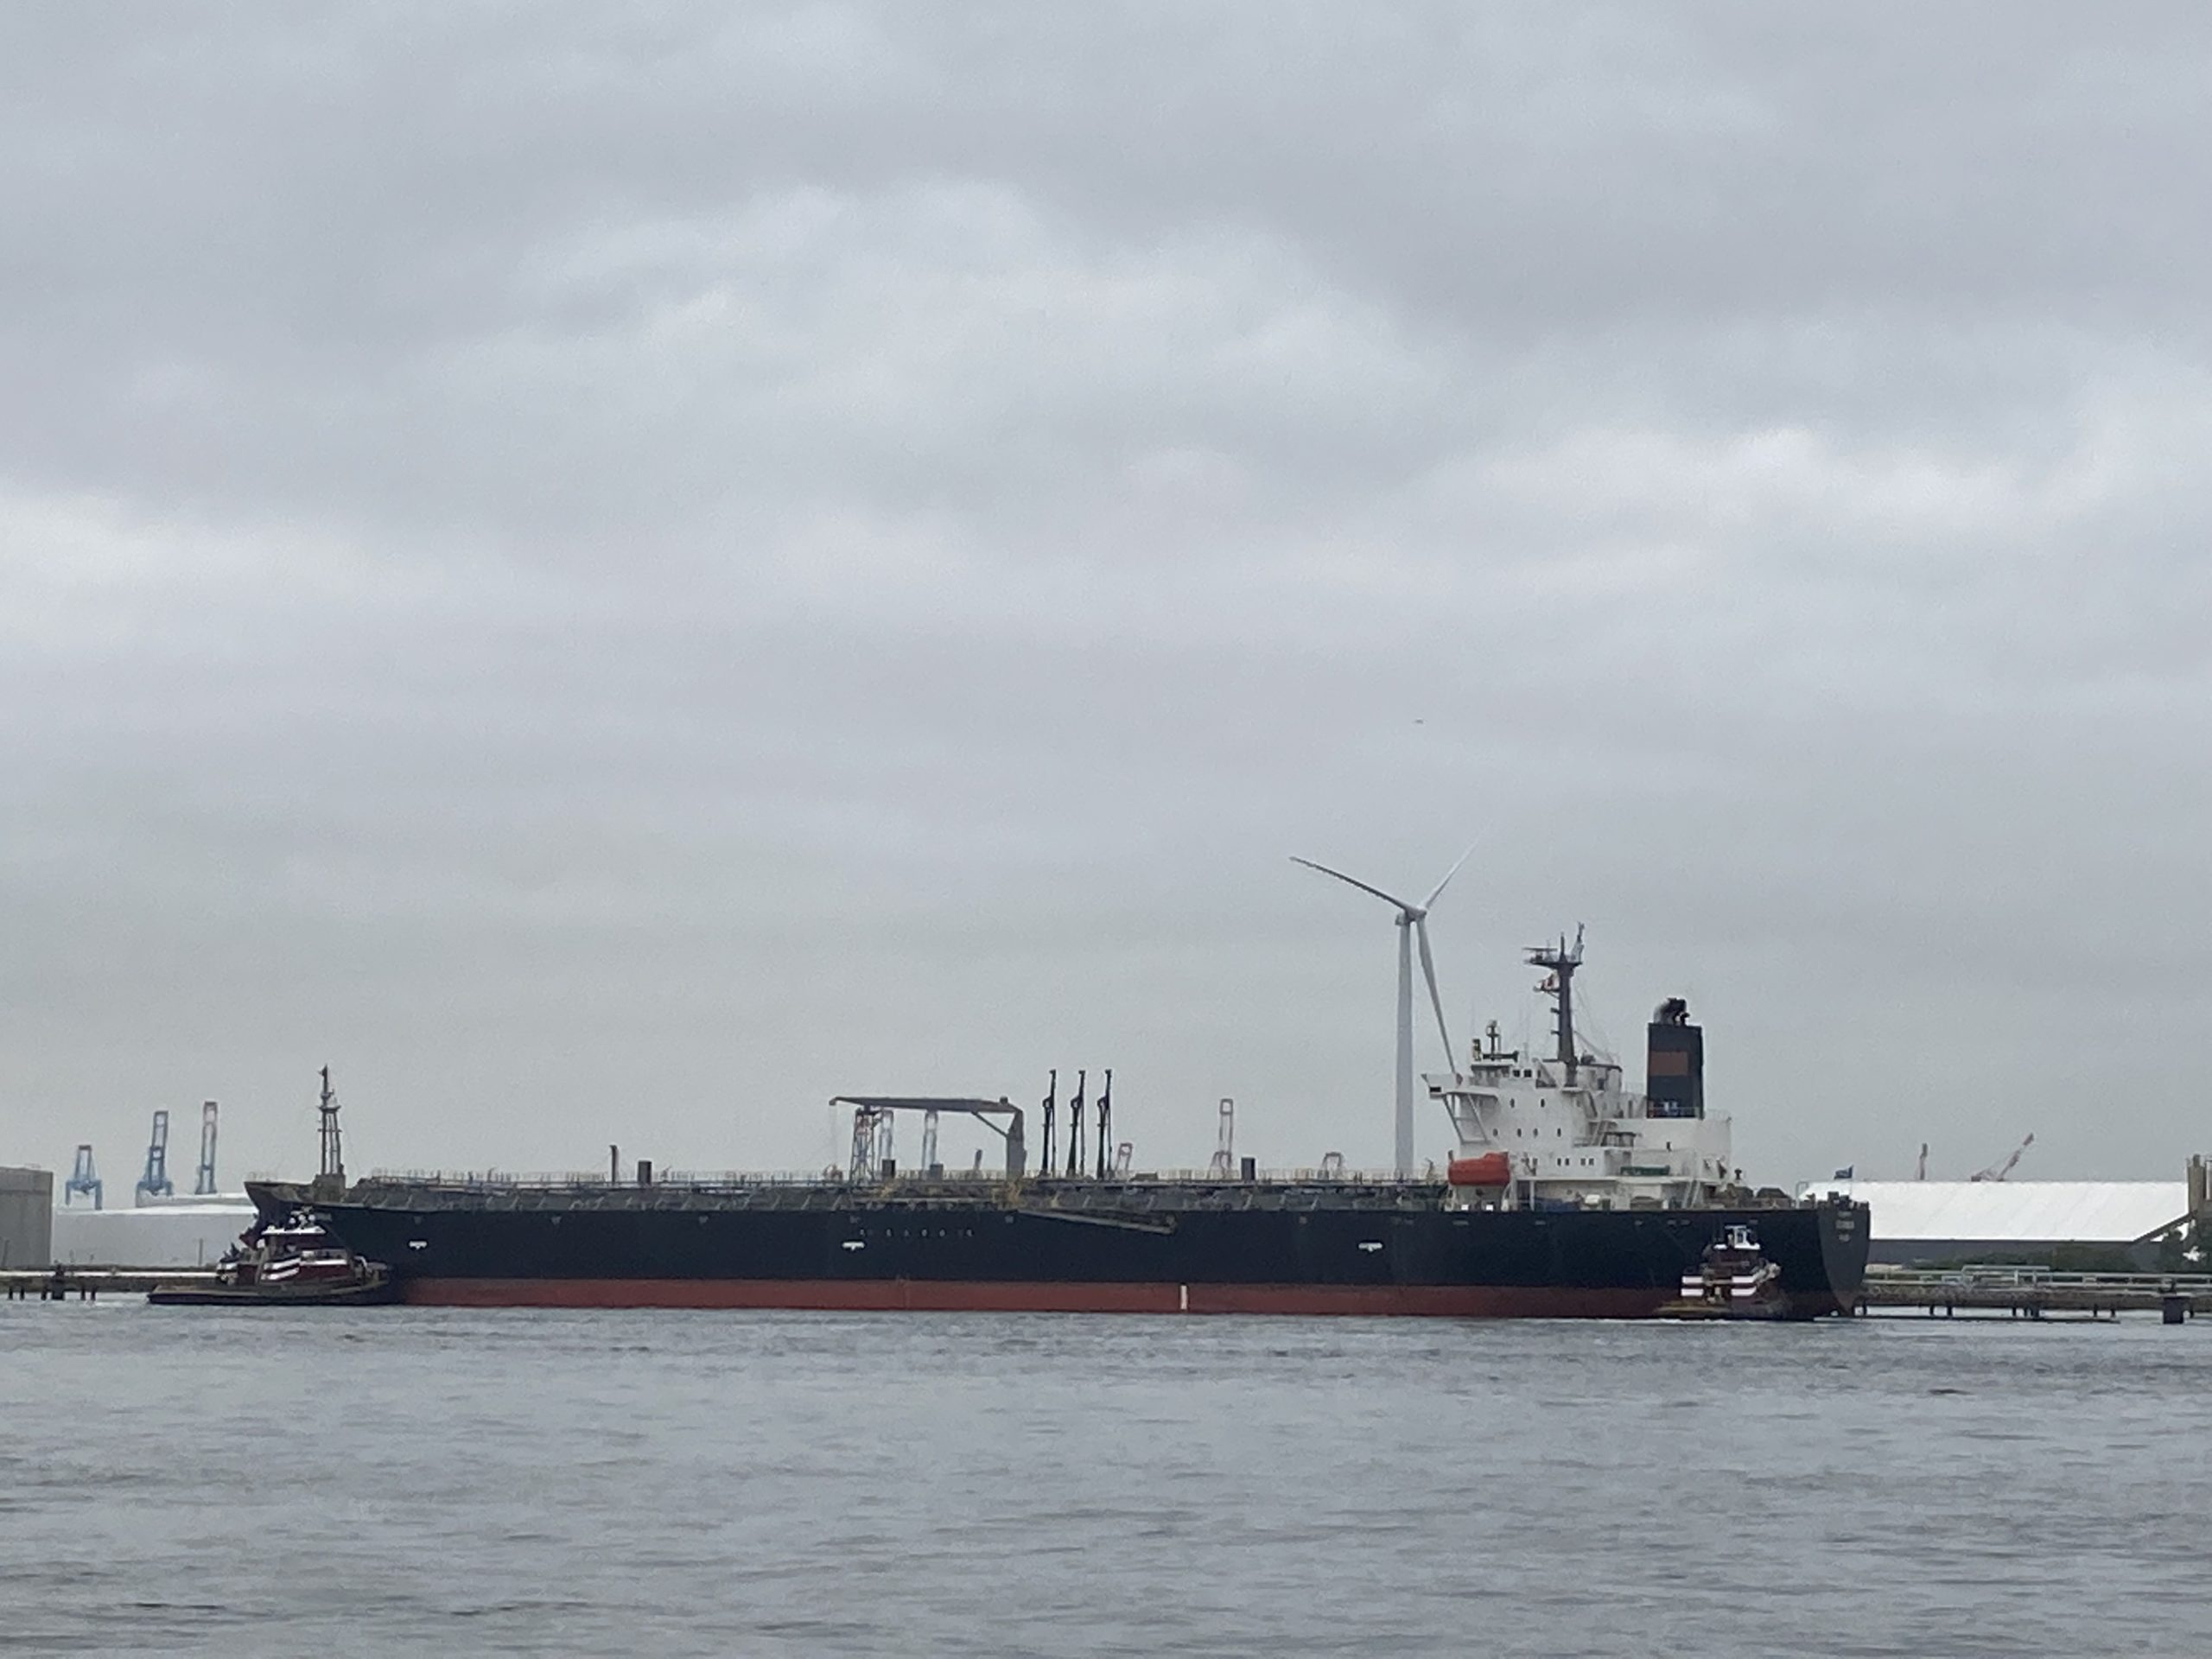 Black hulled freighter by a giant windmill on a windless, cloudy day.